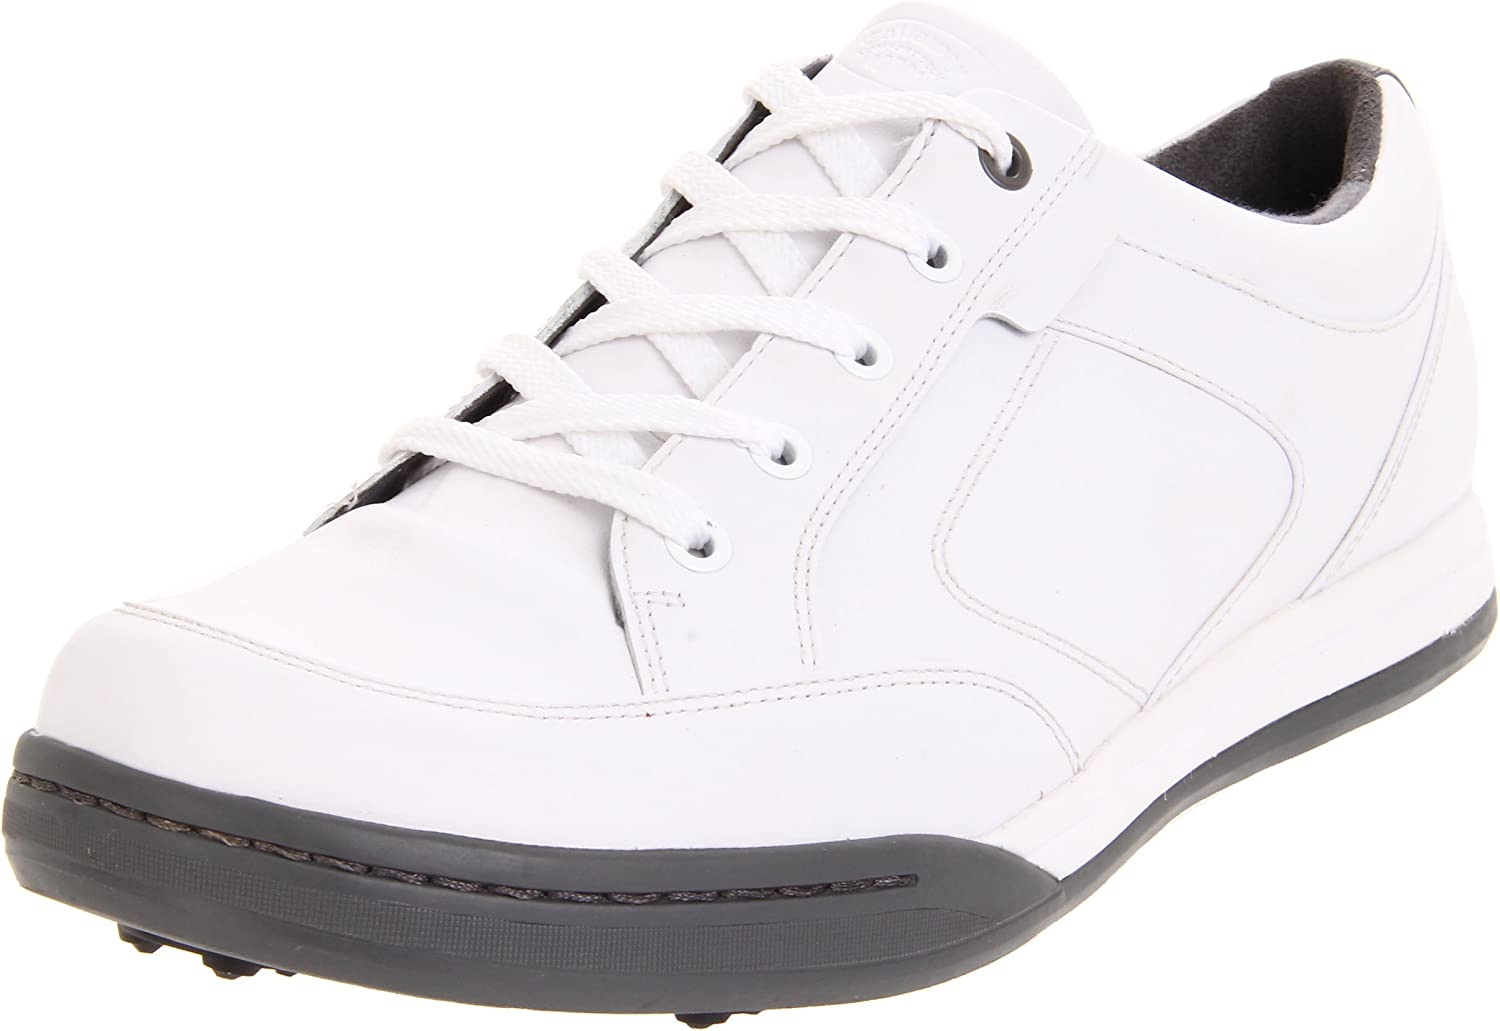 Callaway Footwear Men S Del Mar Golf Shoe 2013 Edition Golf